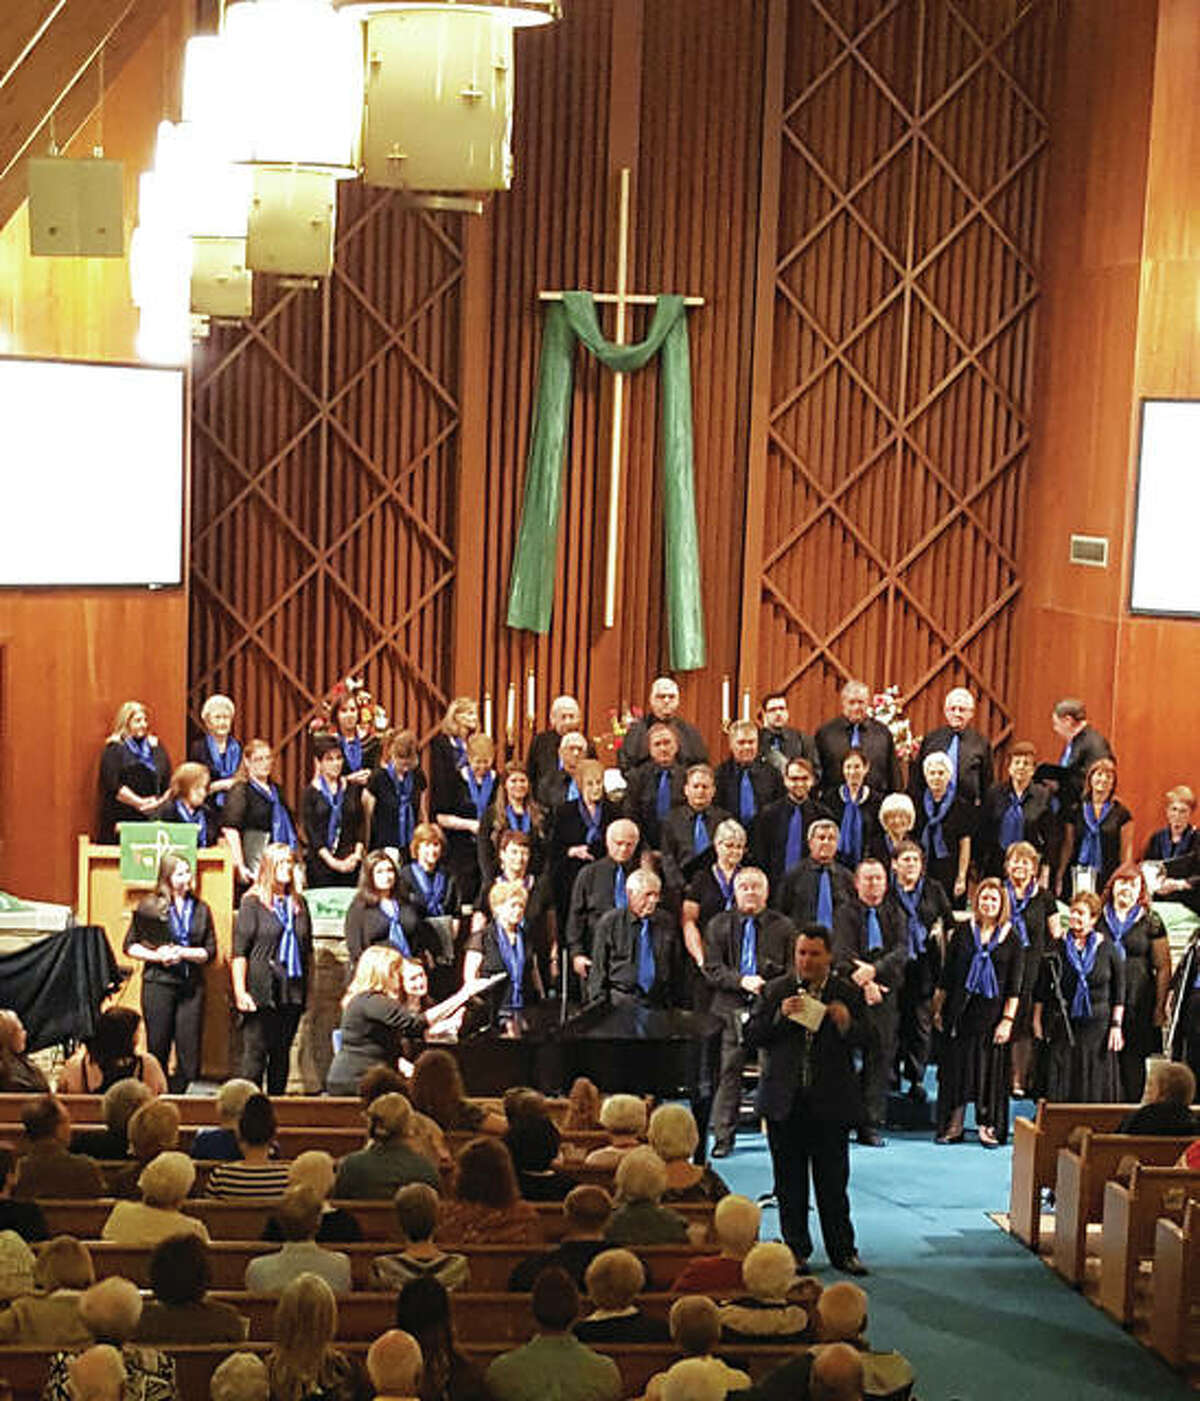 The Collinsville Chorale includes members from around the Metro East and Greater St. Louis area.